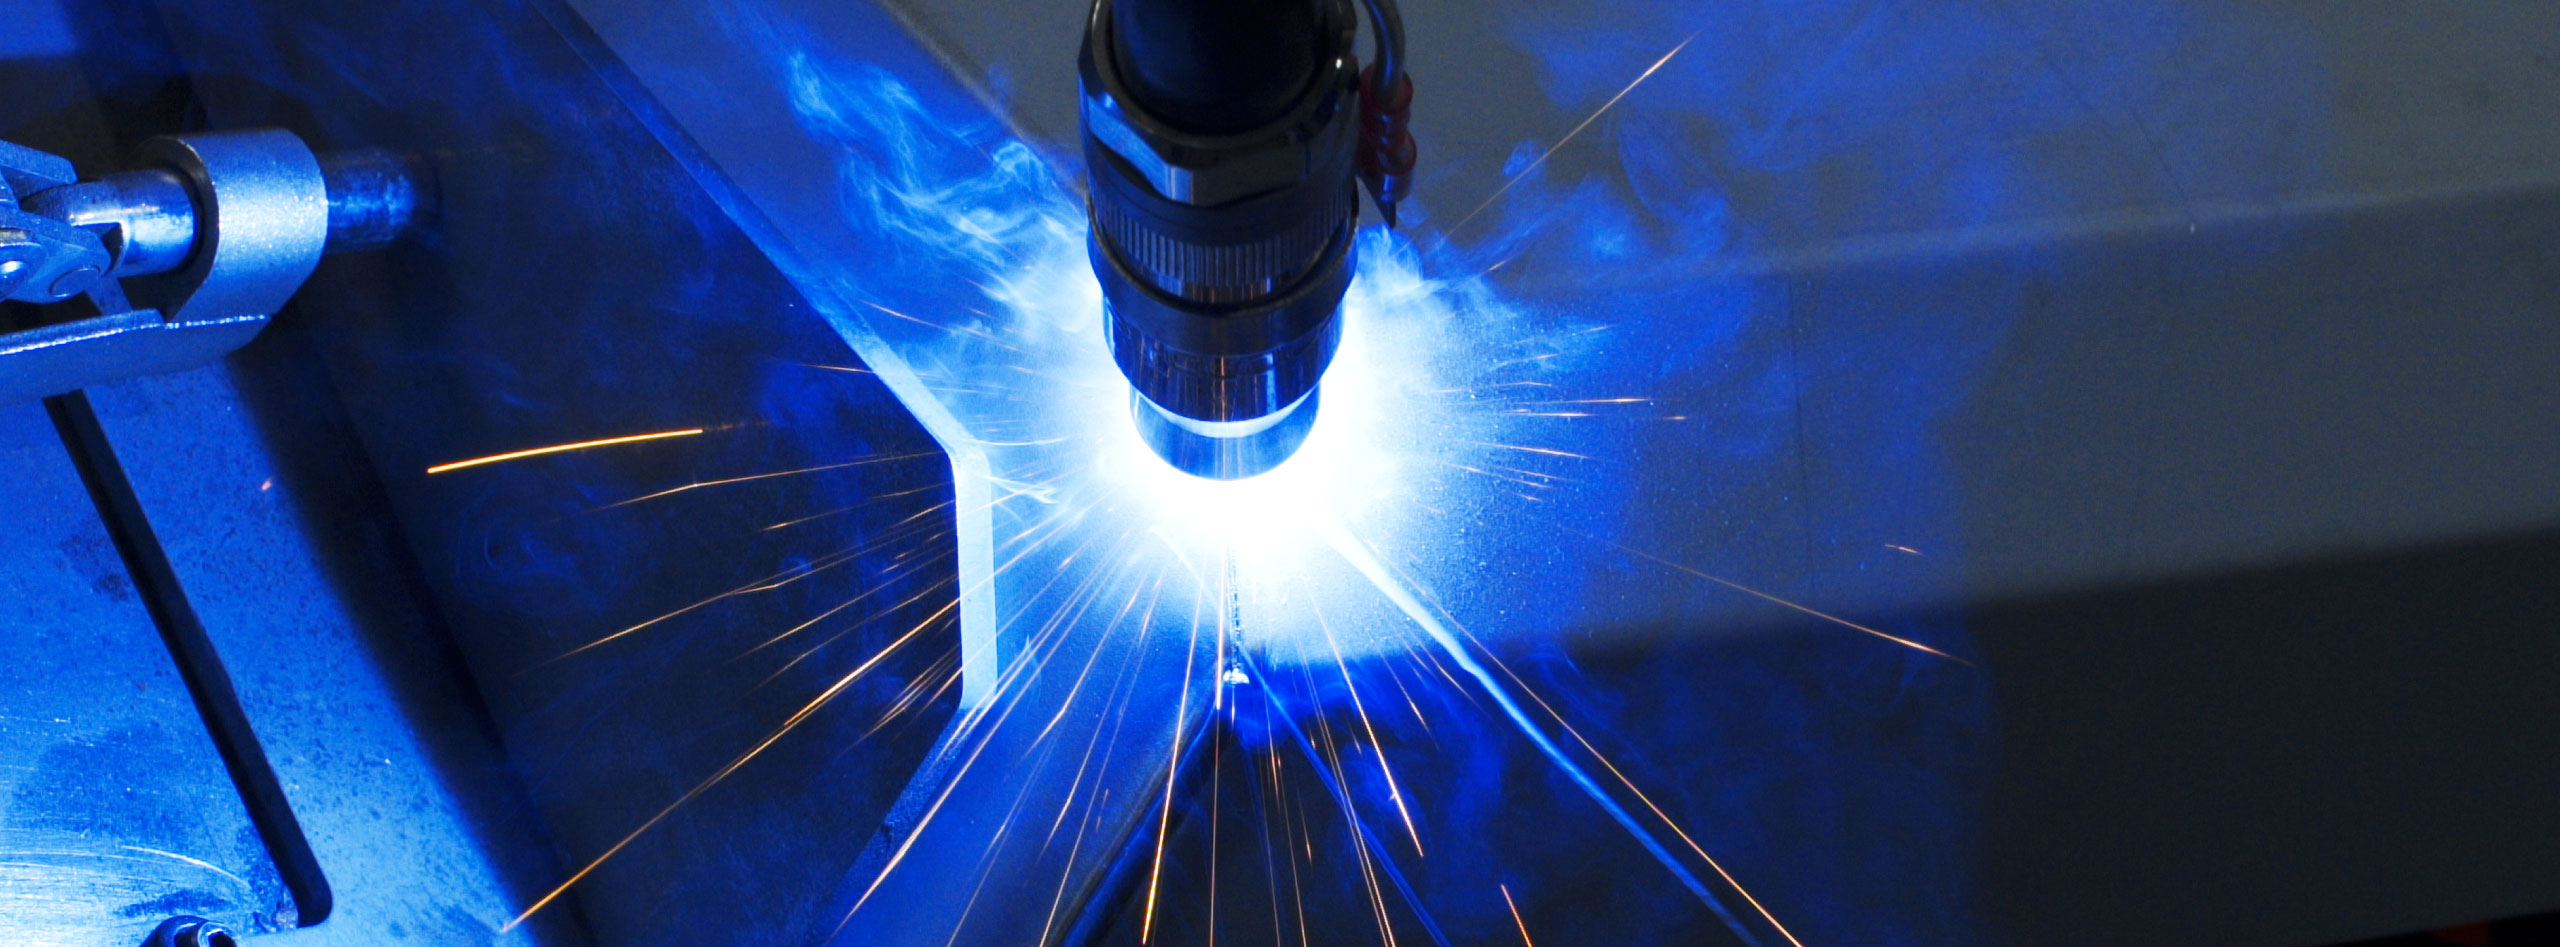 Welding robot shot with great sparks